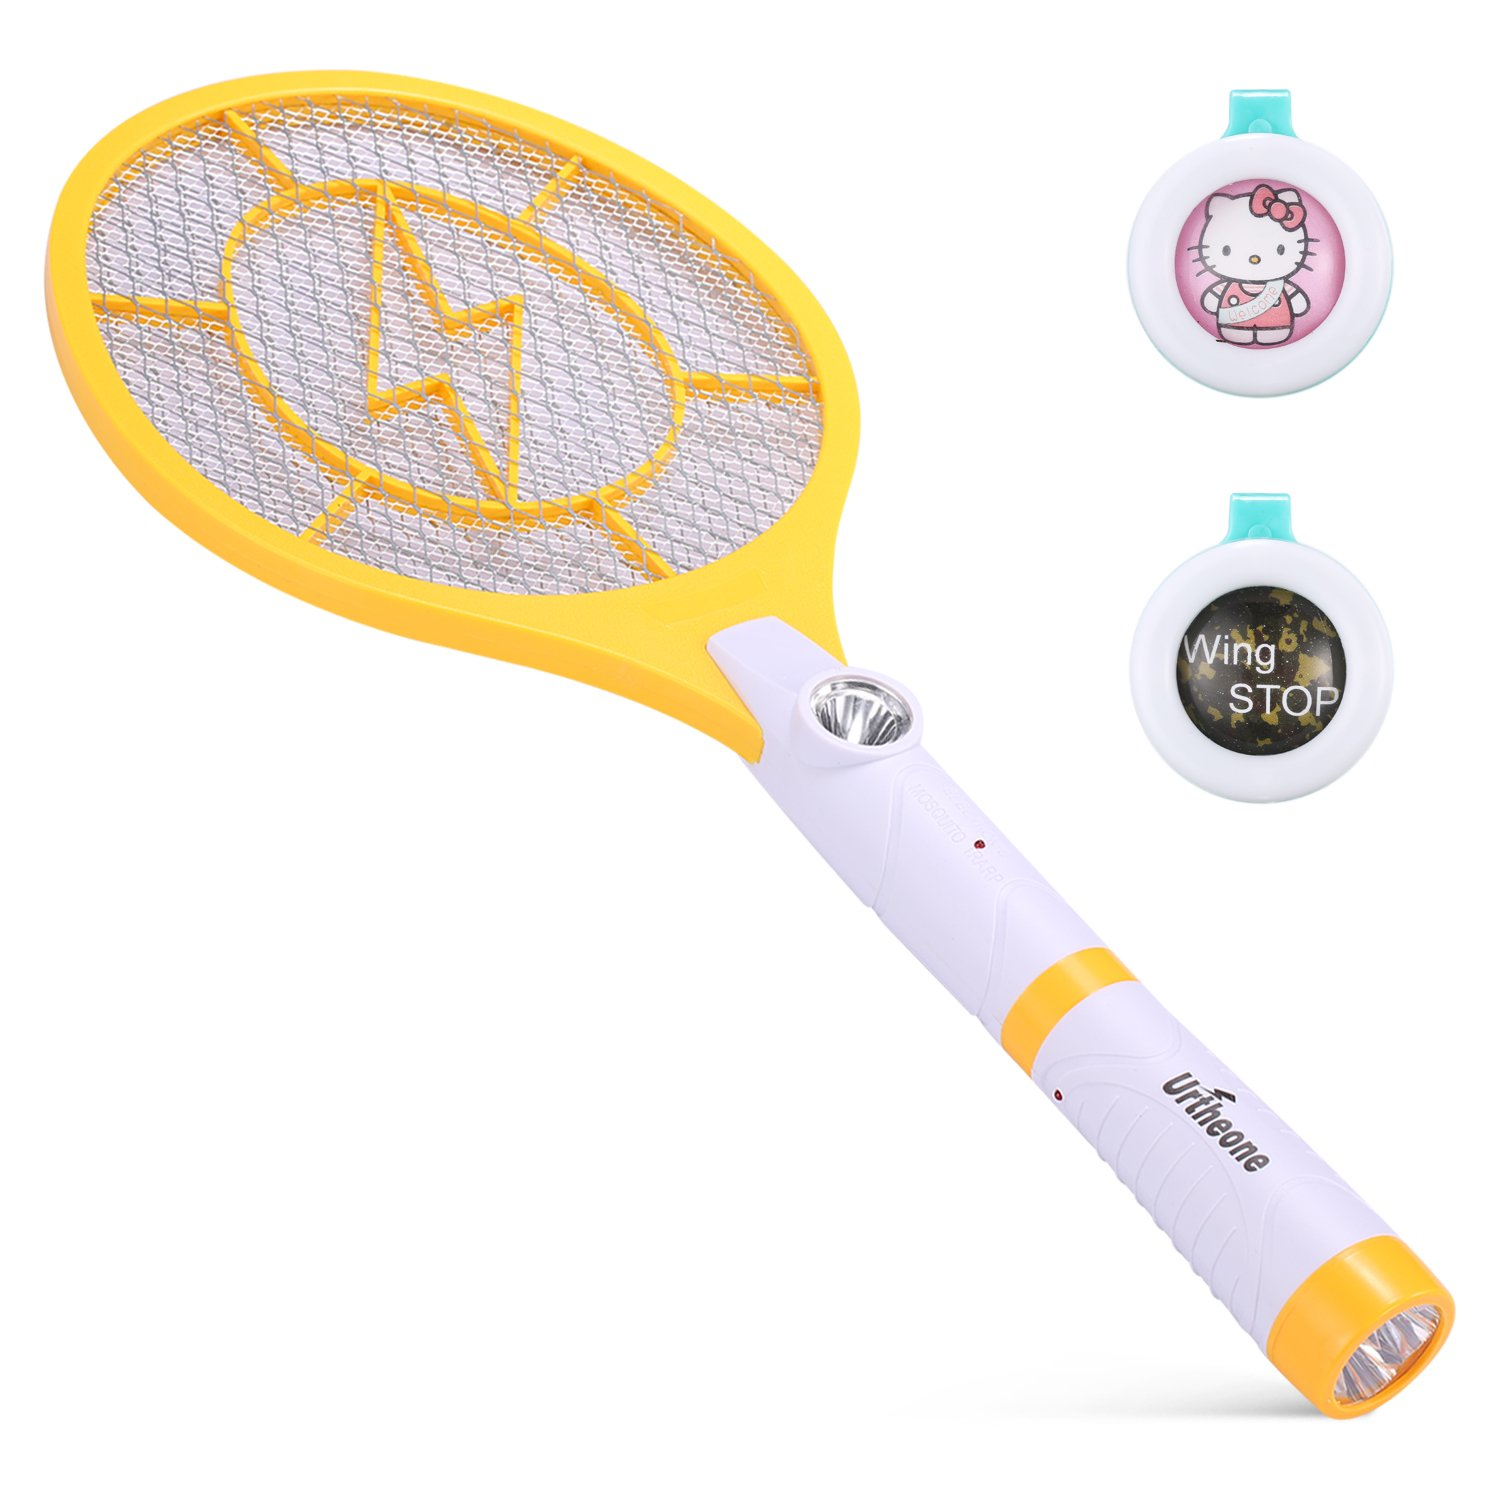 Urtheone Bug Zapper, Rechargeable Electric Fly Swatter Handheld Mosquito Insect Killer, 3800 Volt Mosquito Zapper Racket with Detachable Flash Light, Suitable for Indoor, Travel, Campings and Outdoor by Urtheone